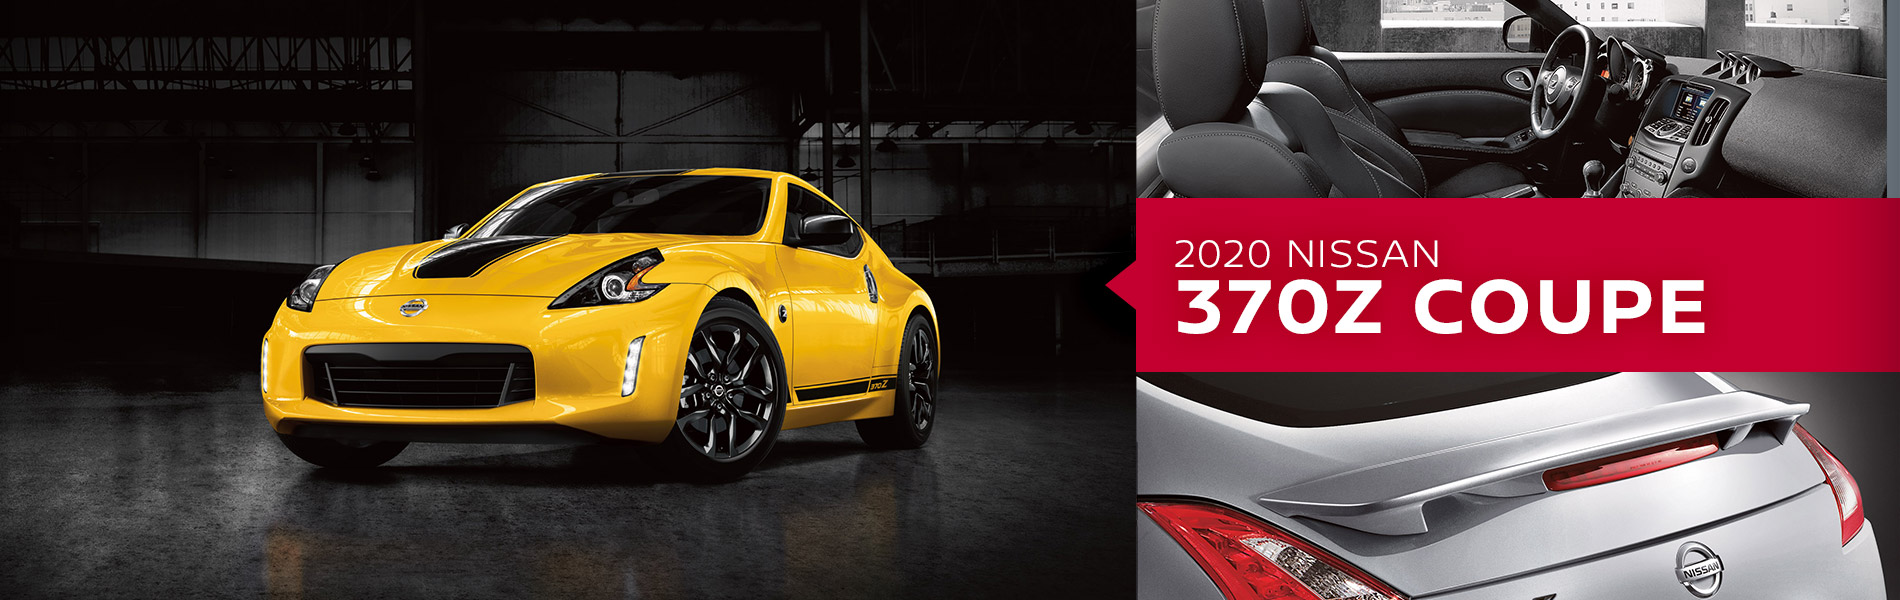 2020 Nissan 370z Coupe | Greenville, MS